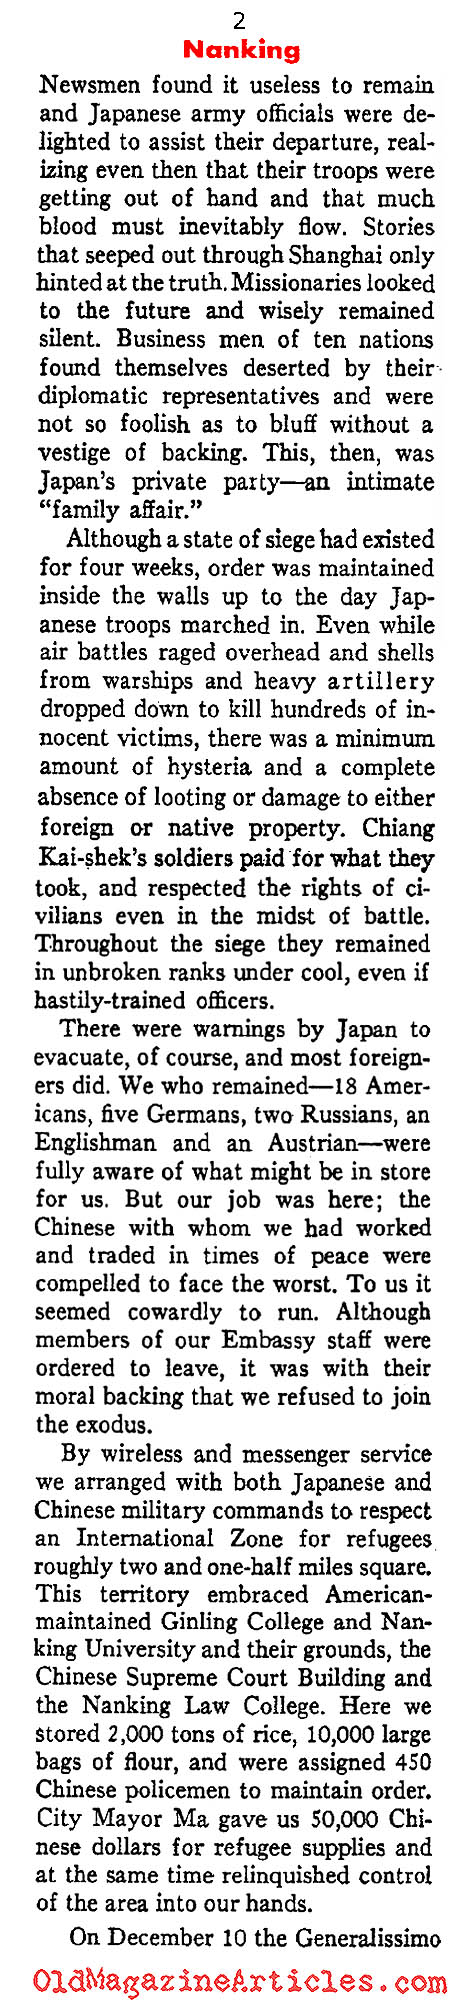 Nanking Sacked (Ken Magazine, 1938)